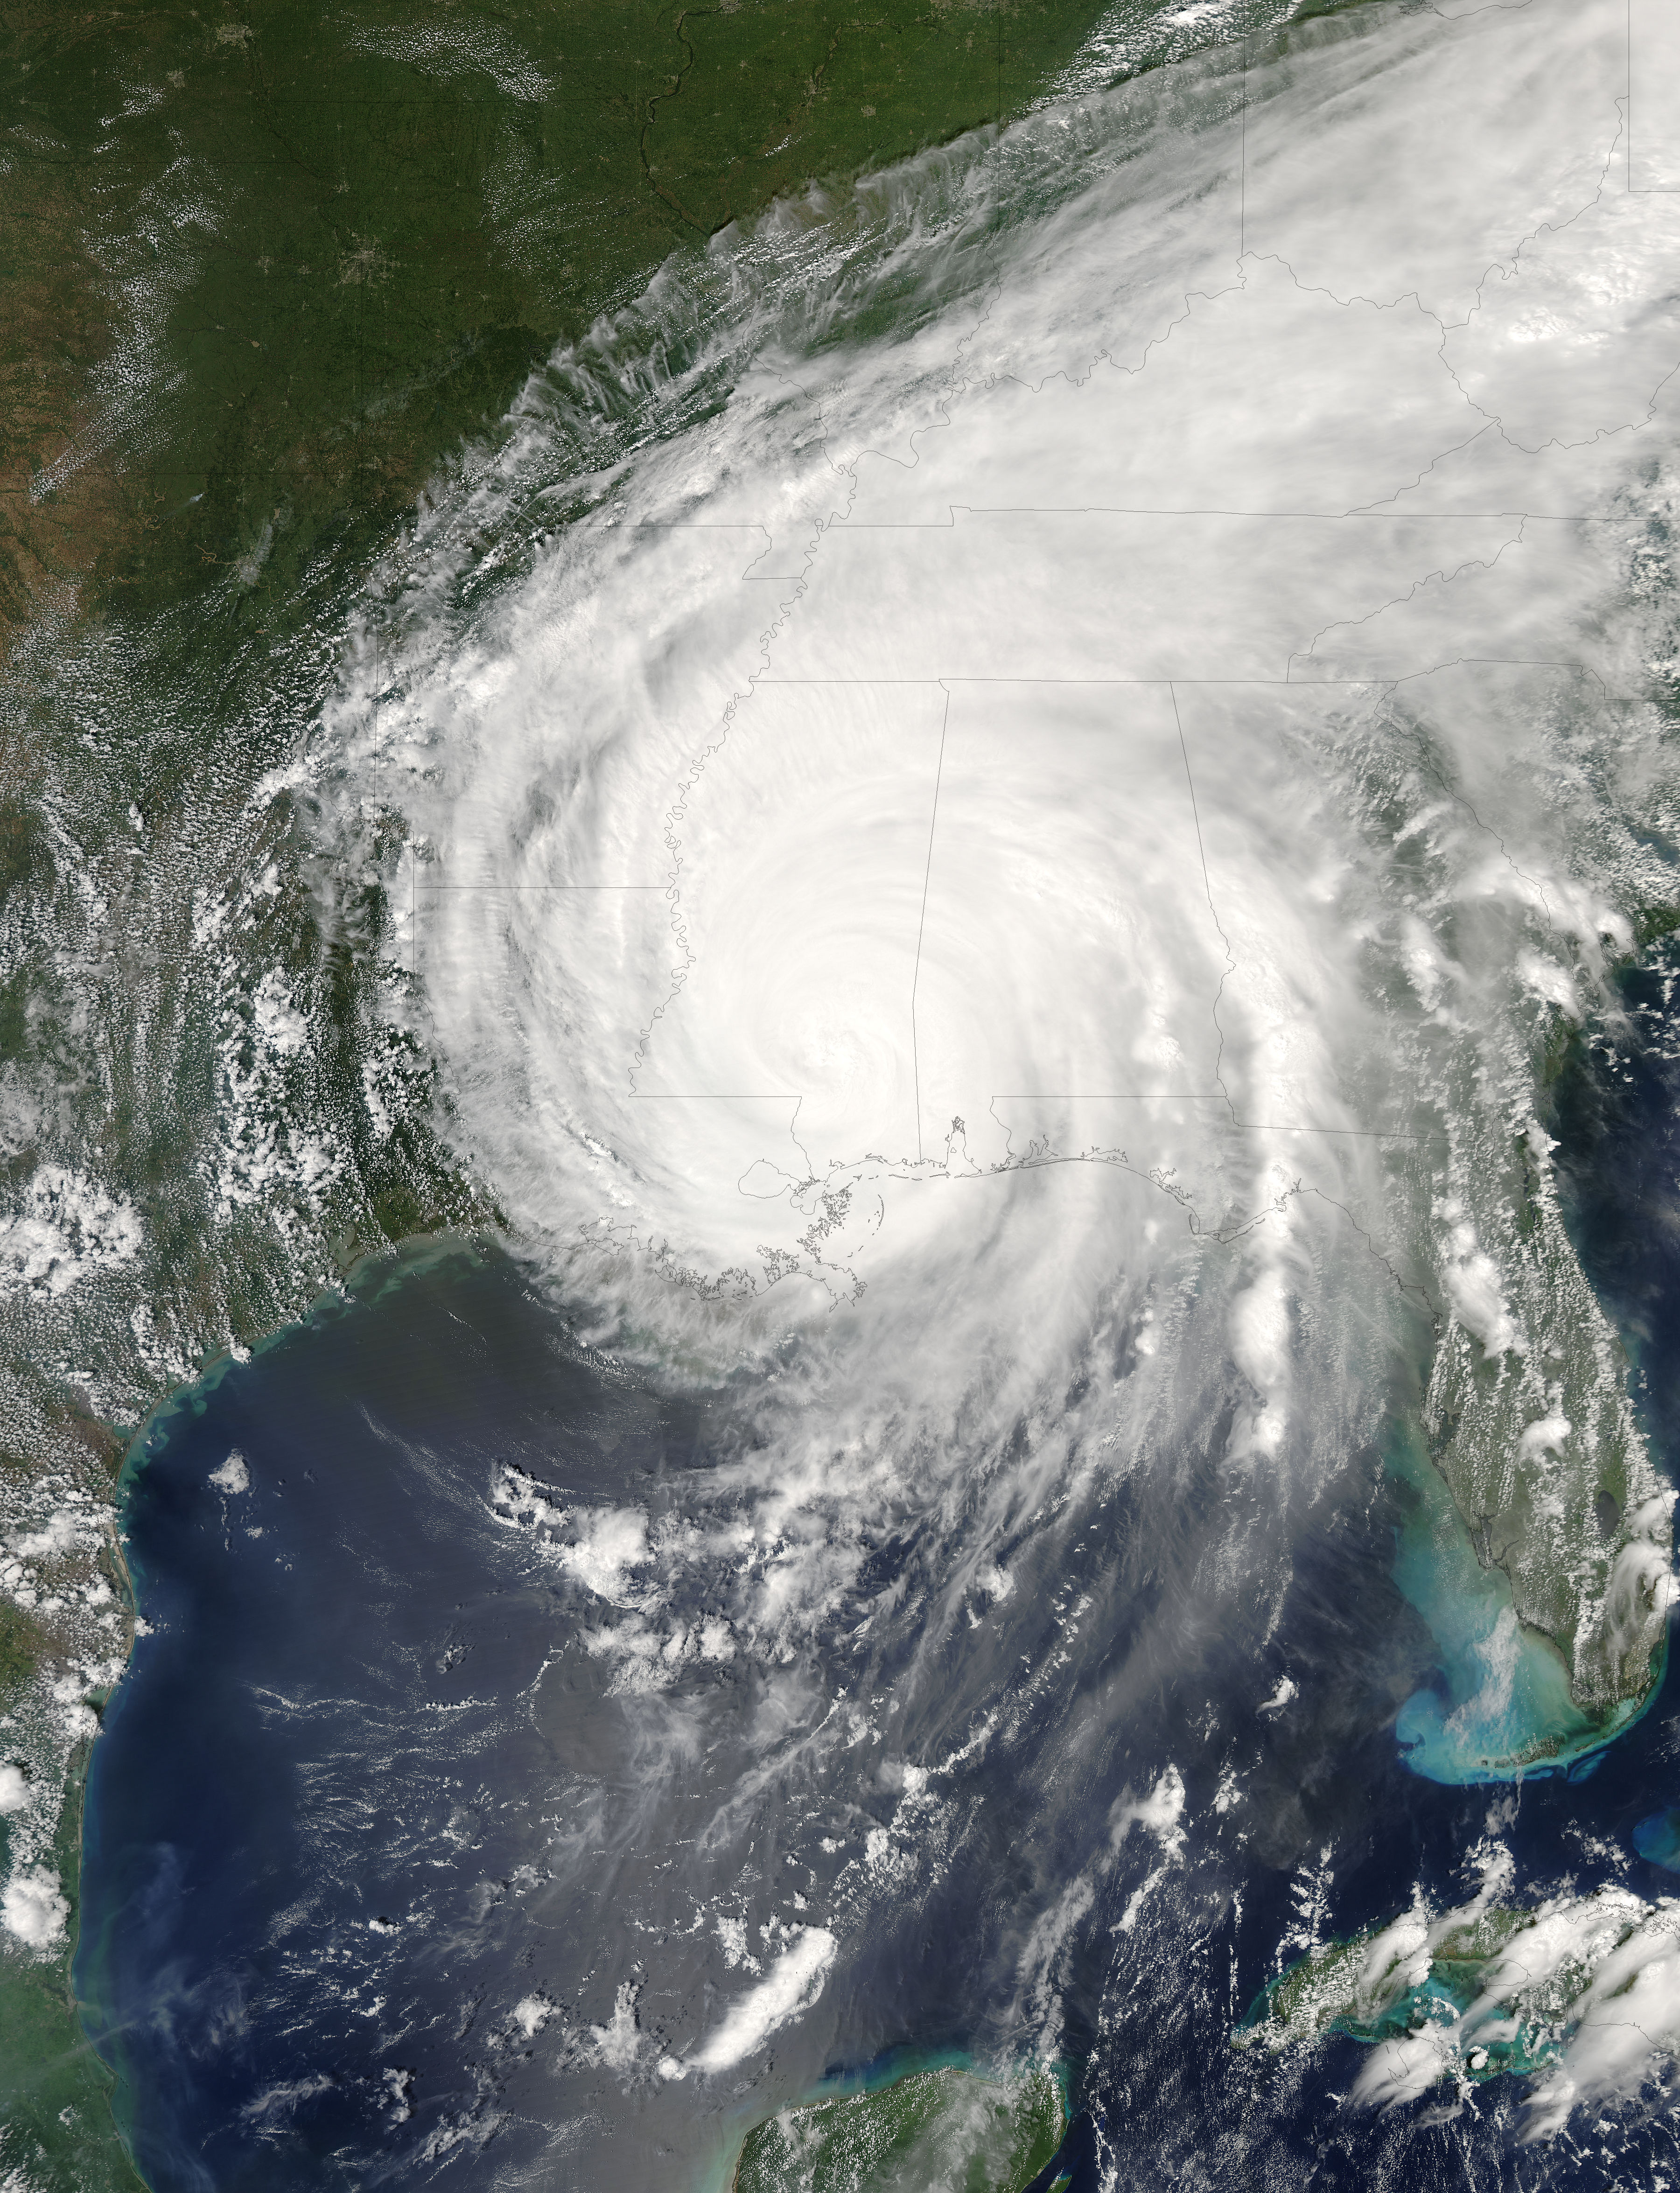 hurricane katrina nasa earth observatory - photo #1